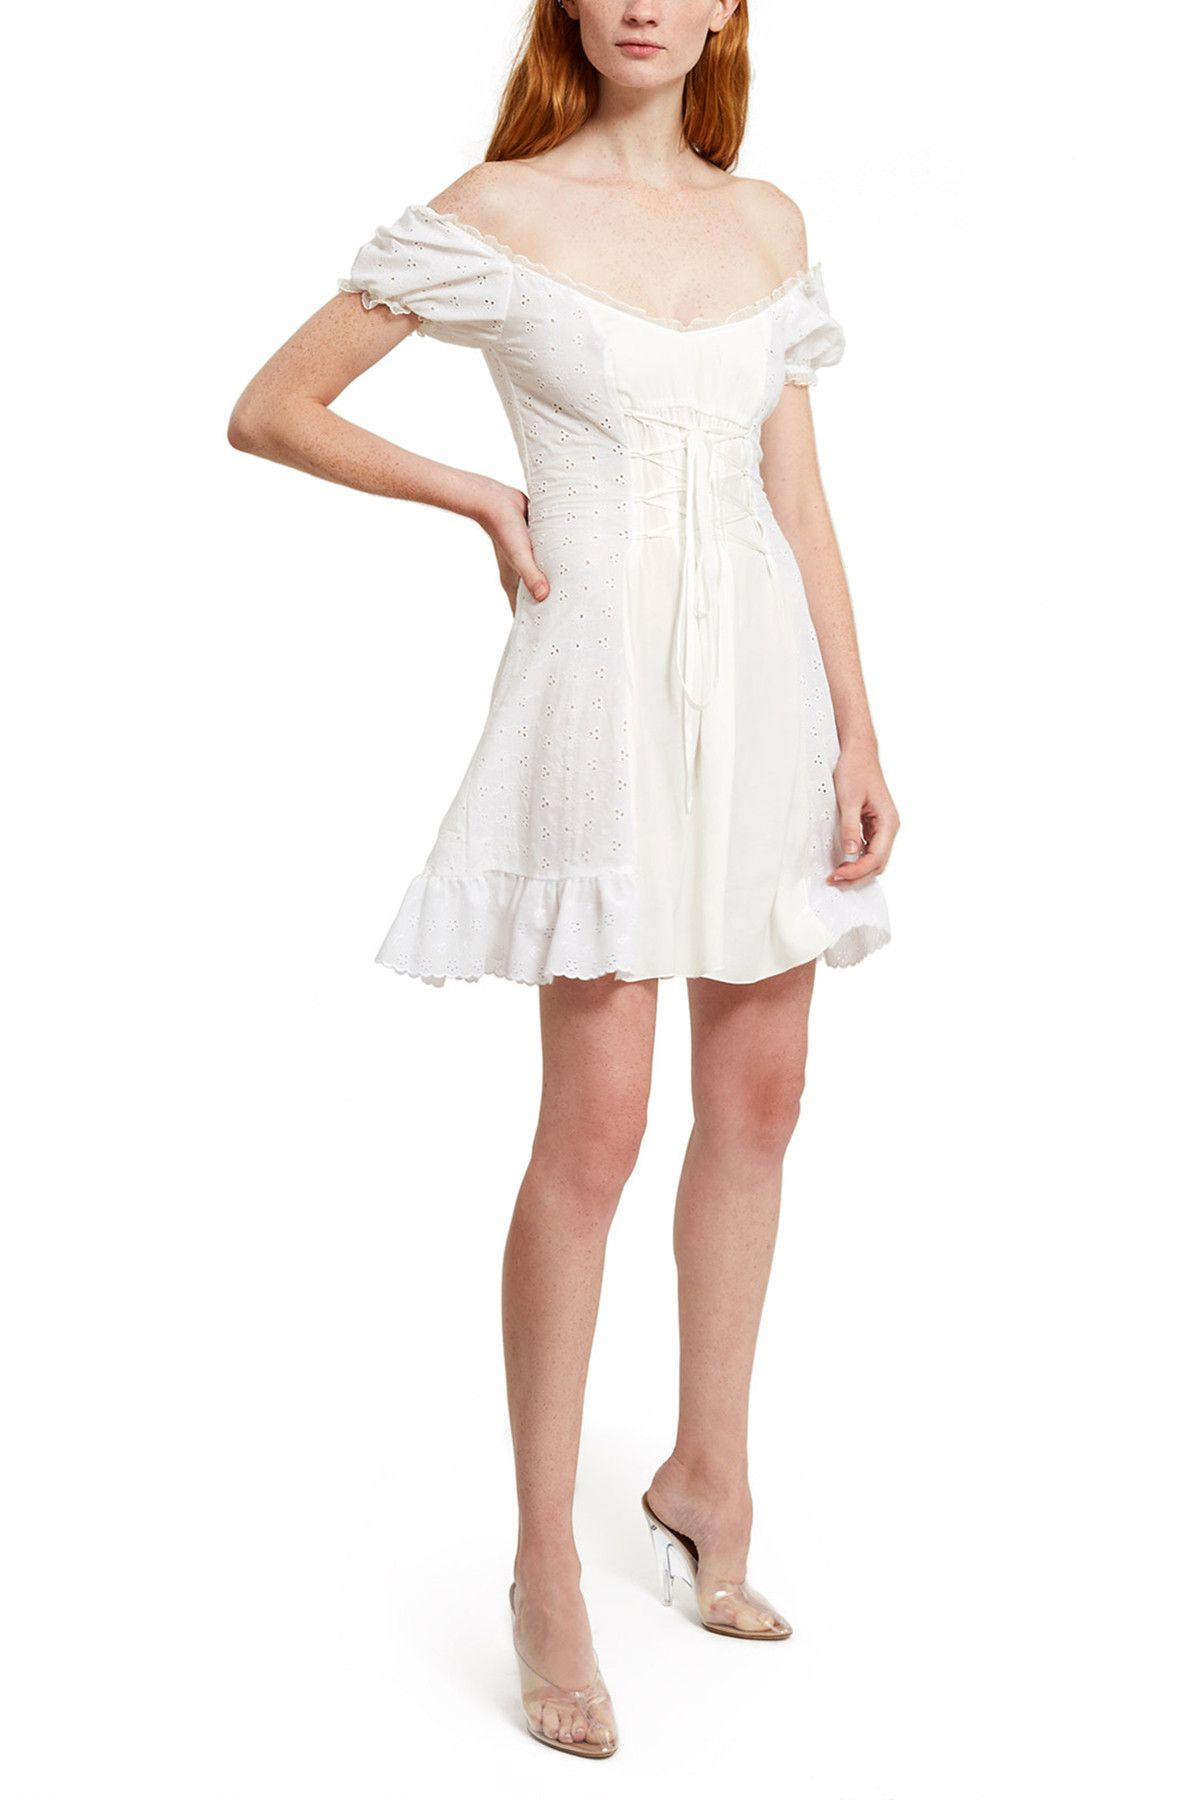 a8fc27d26ebb Daisy, Broderie Day Dress Featuring DAISY's signature cotton broderie  fabric, this off-the